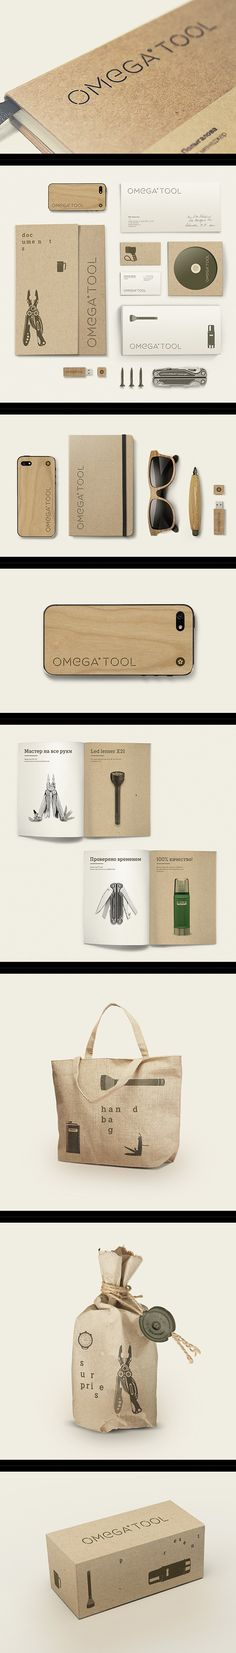 Omega tool #identity #packaging #branding PD